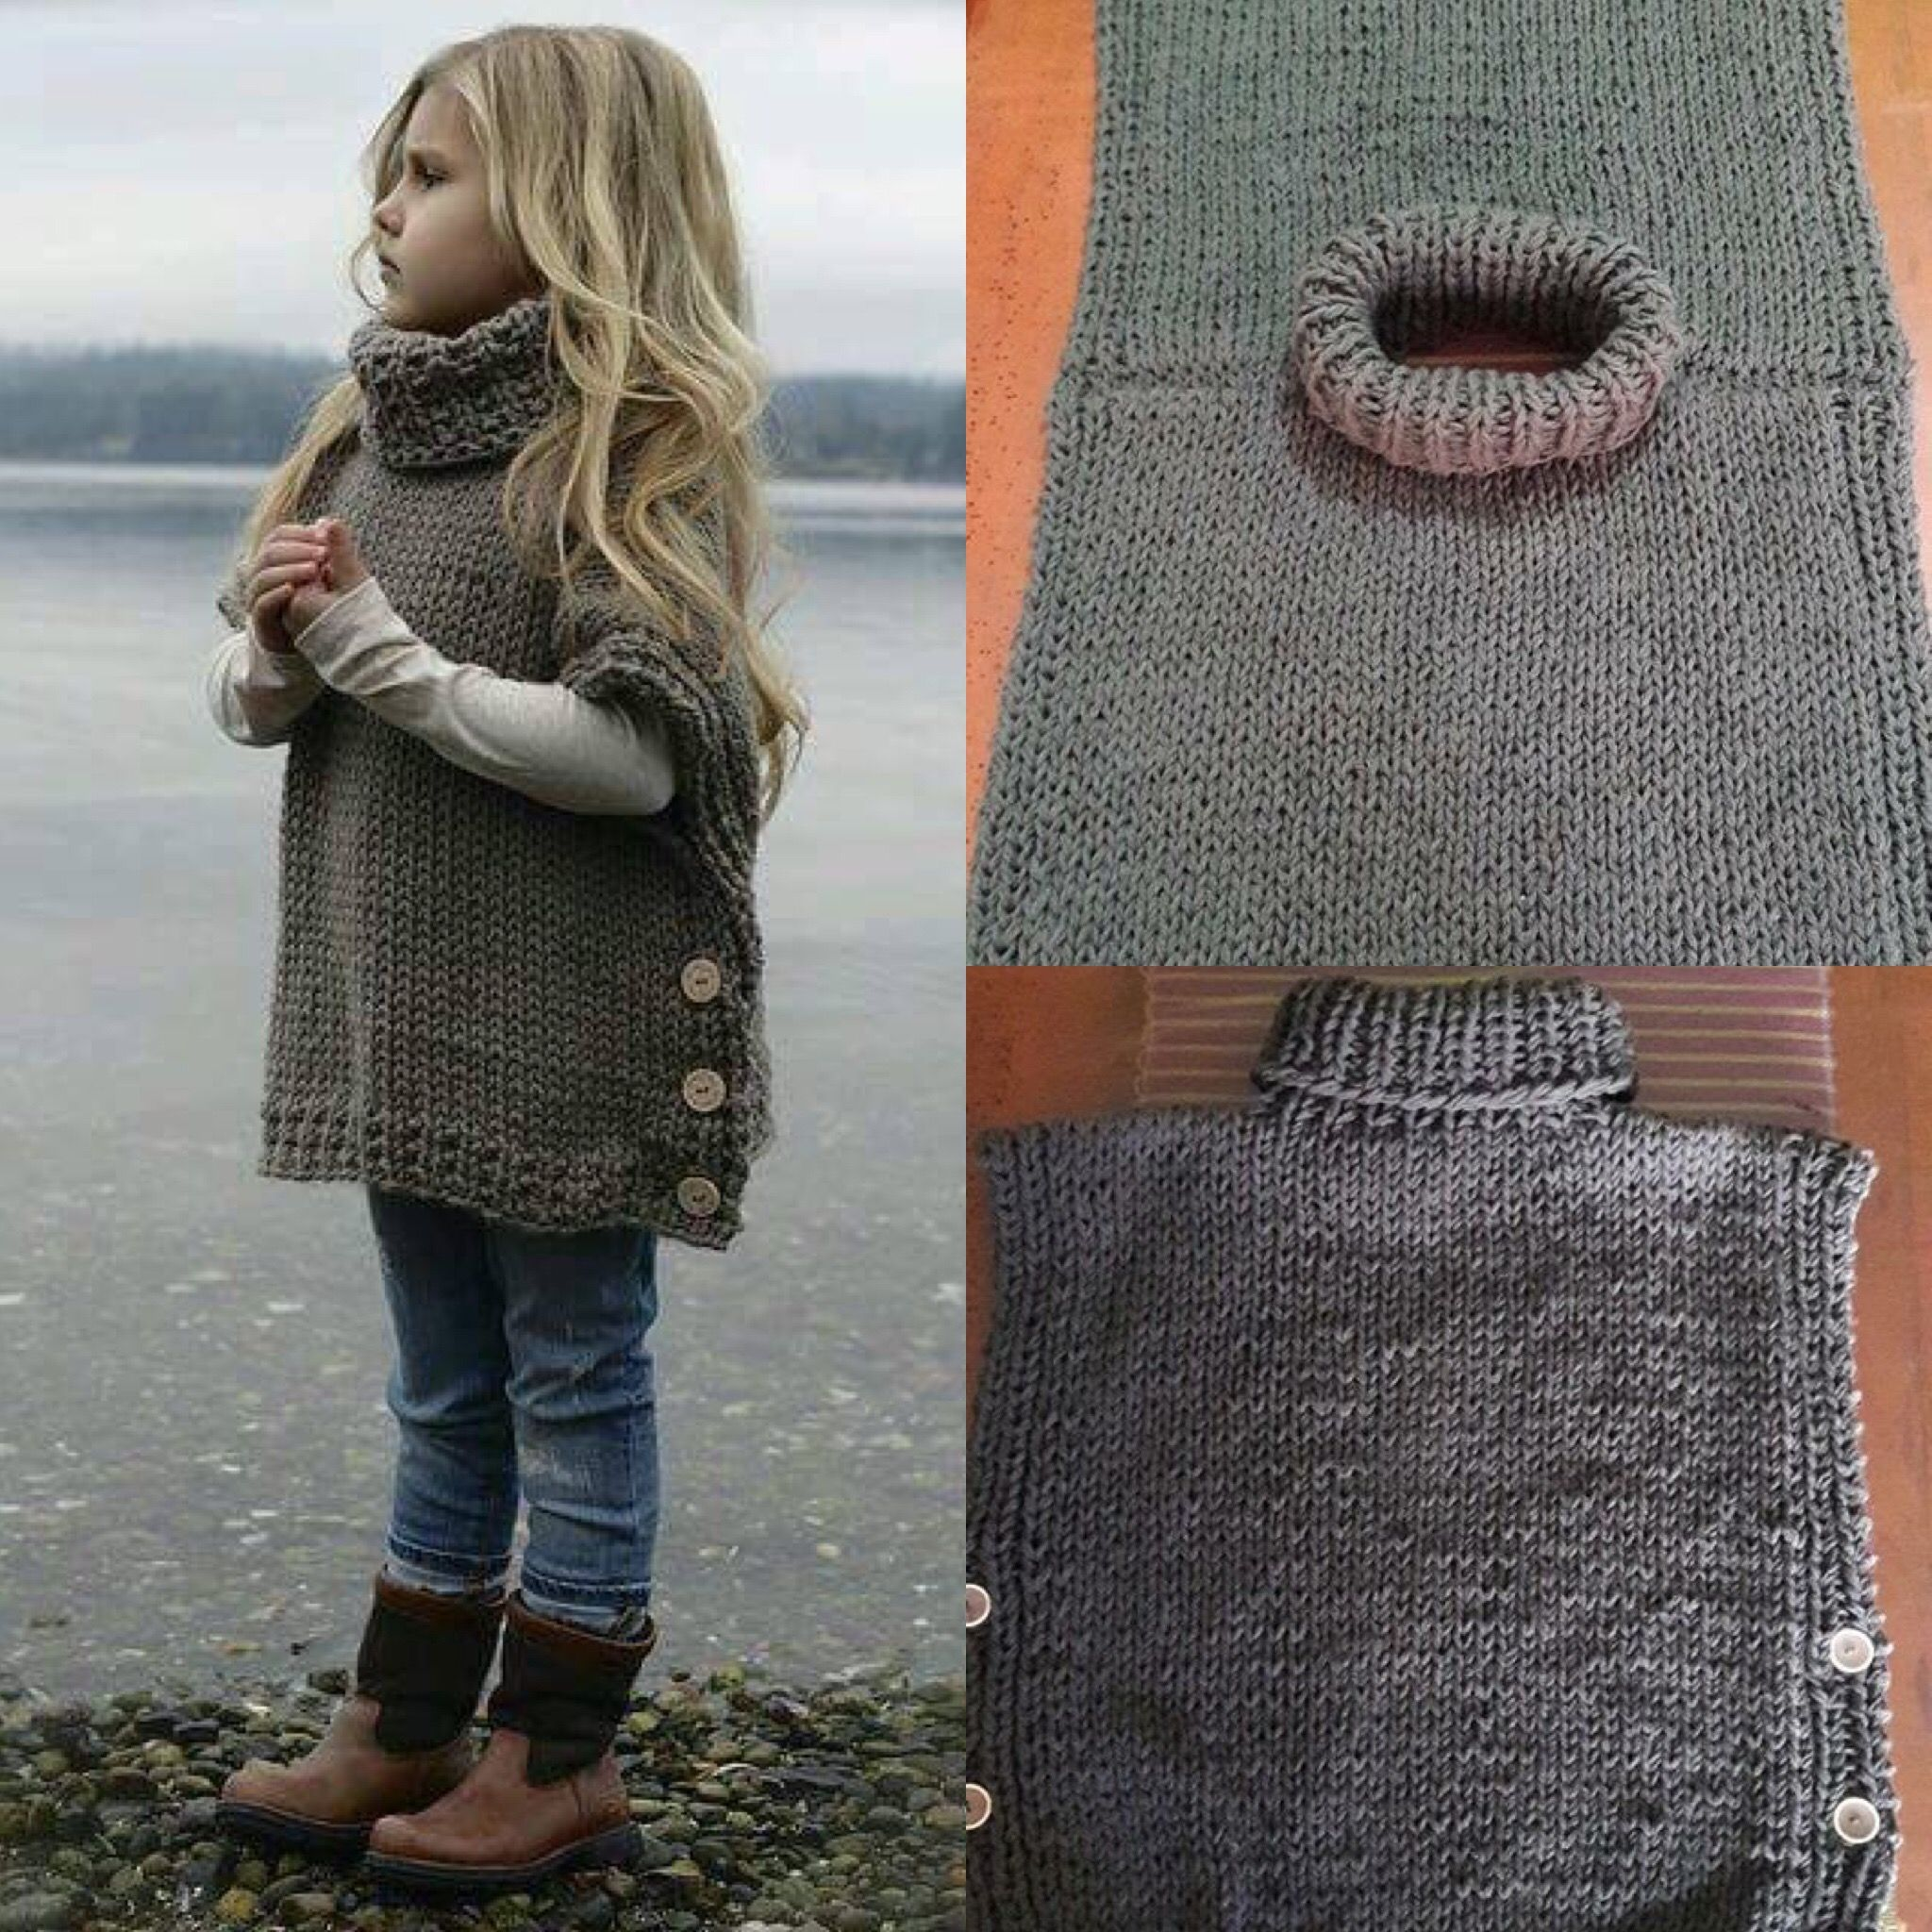 e59823d3c Azel Pullover pattern by Heidi May